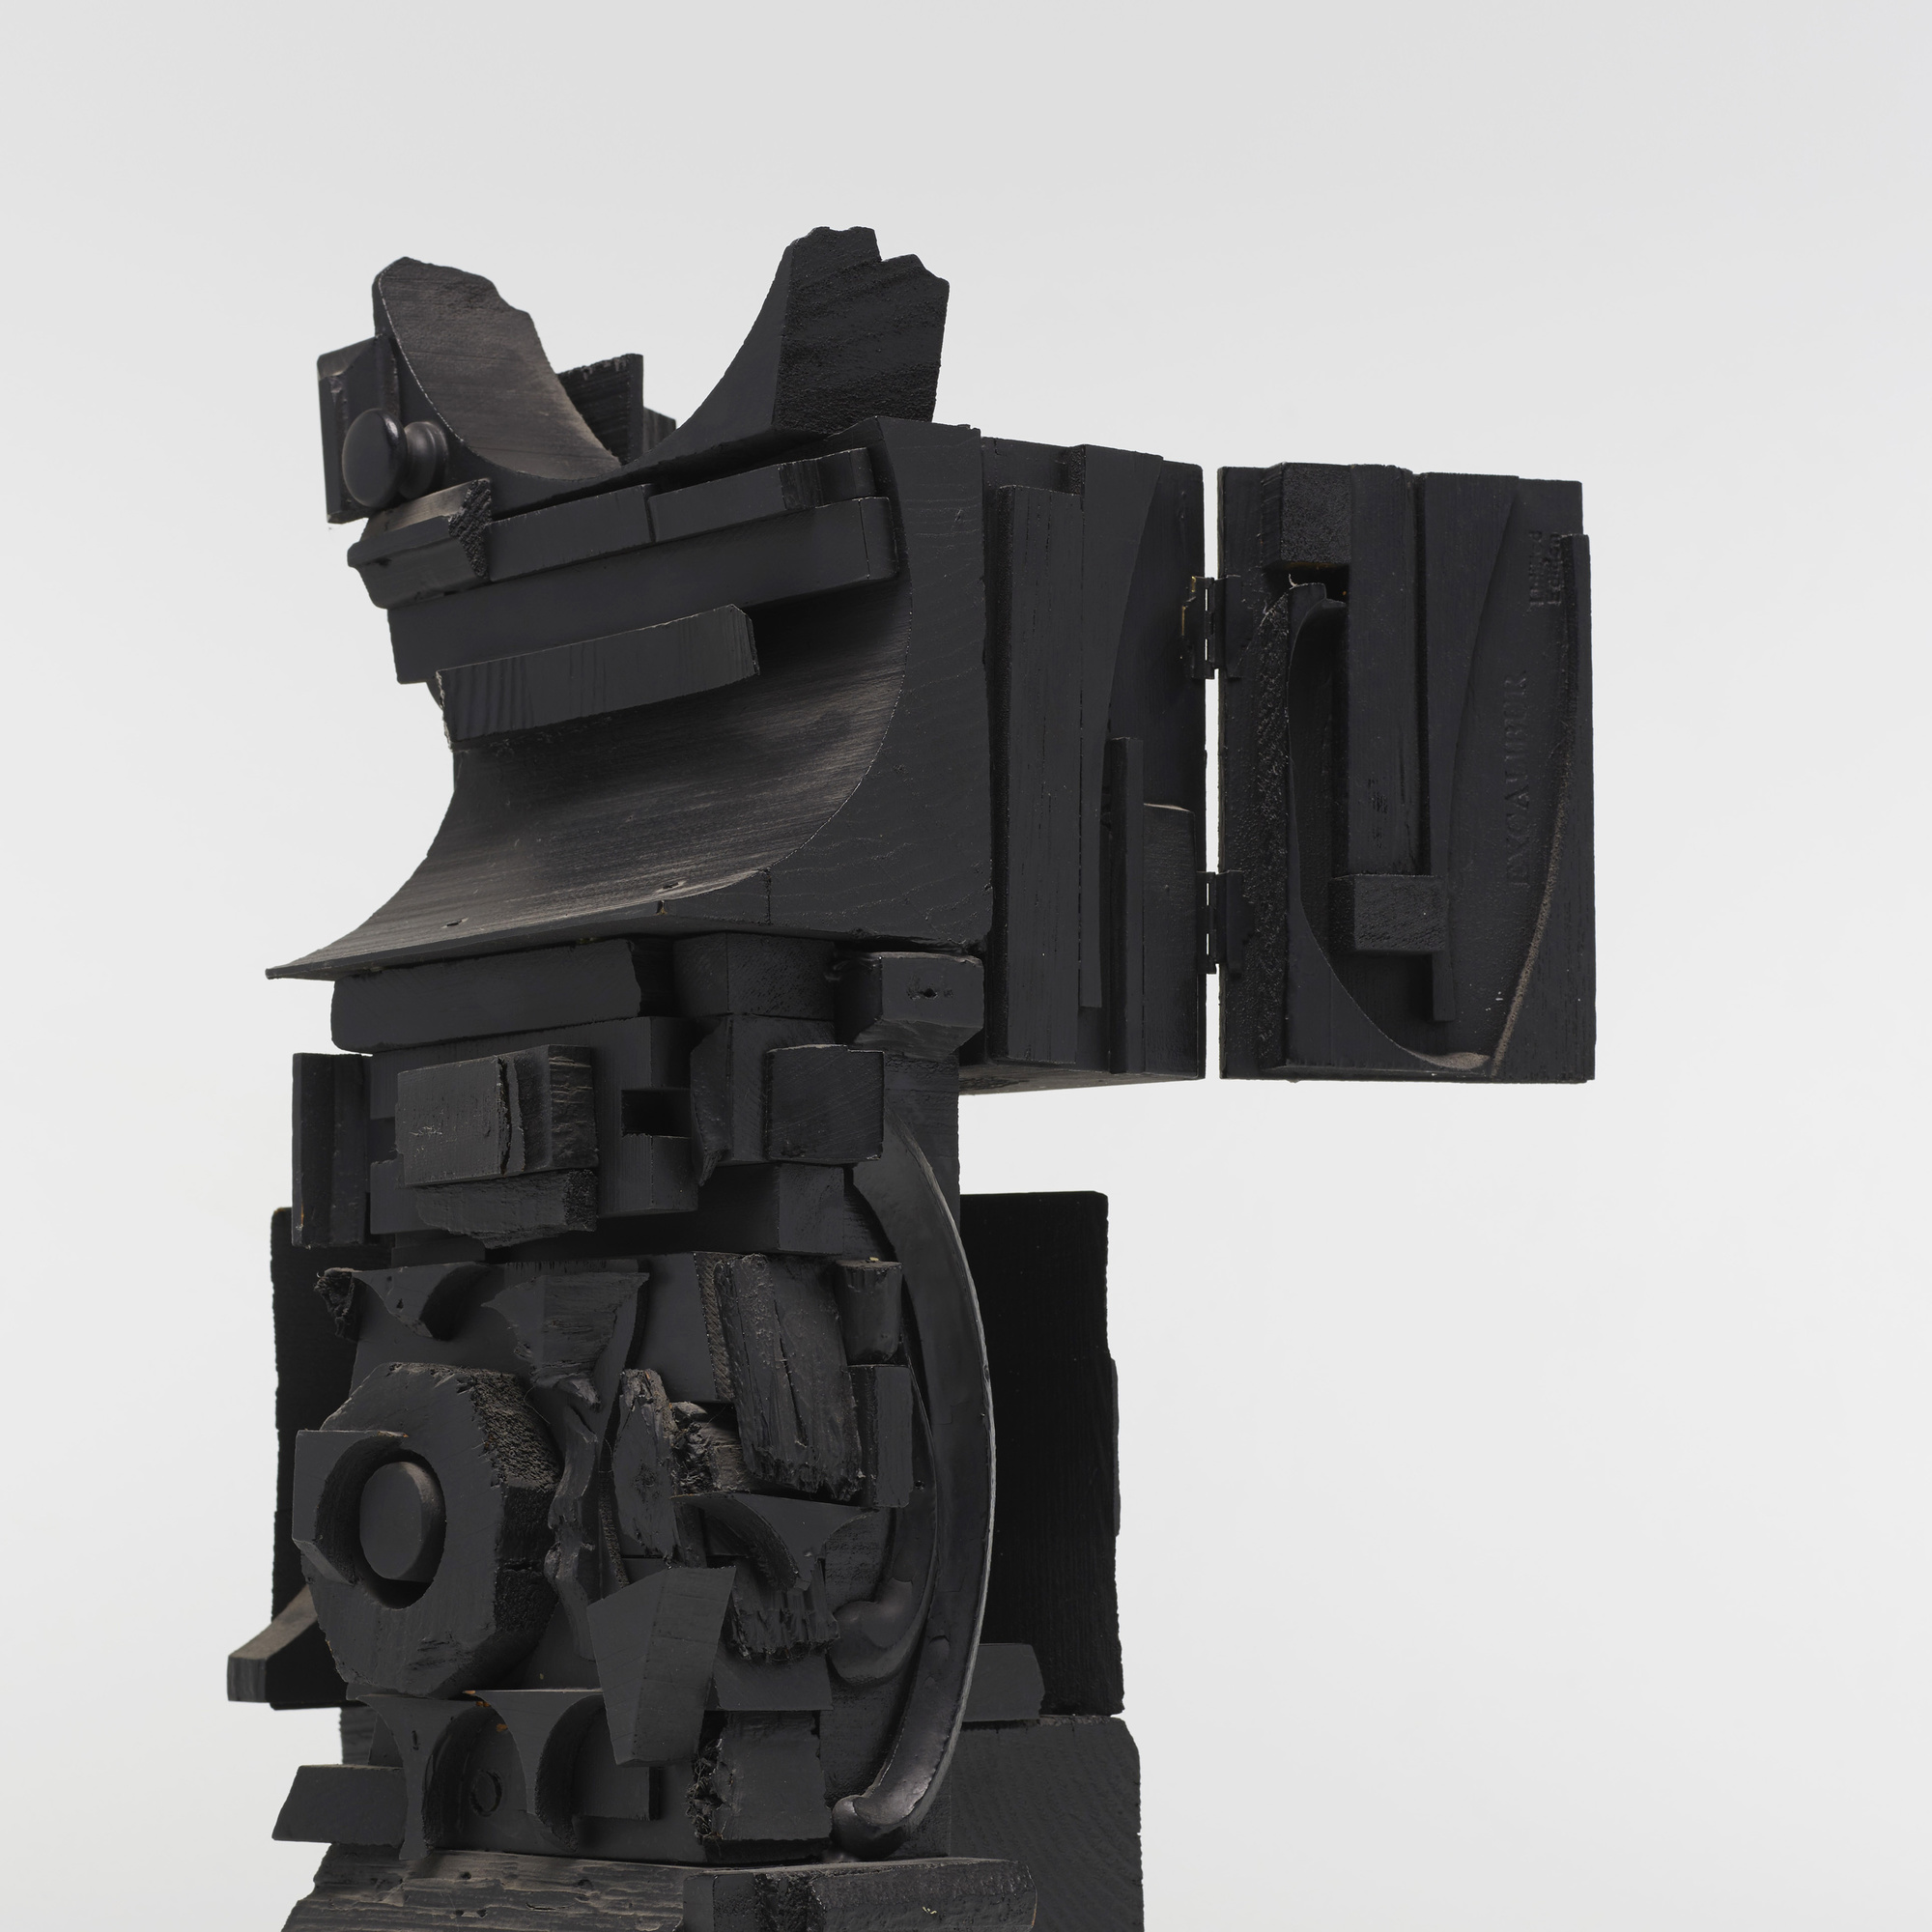 105: Louise Nevelson / Sky Series D (5 of 5)